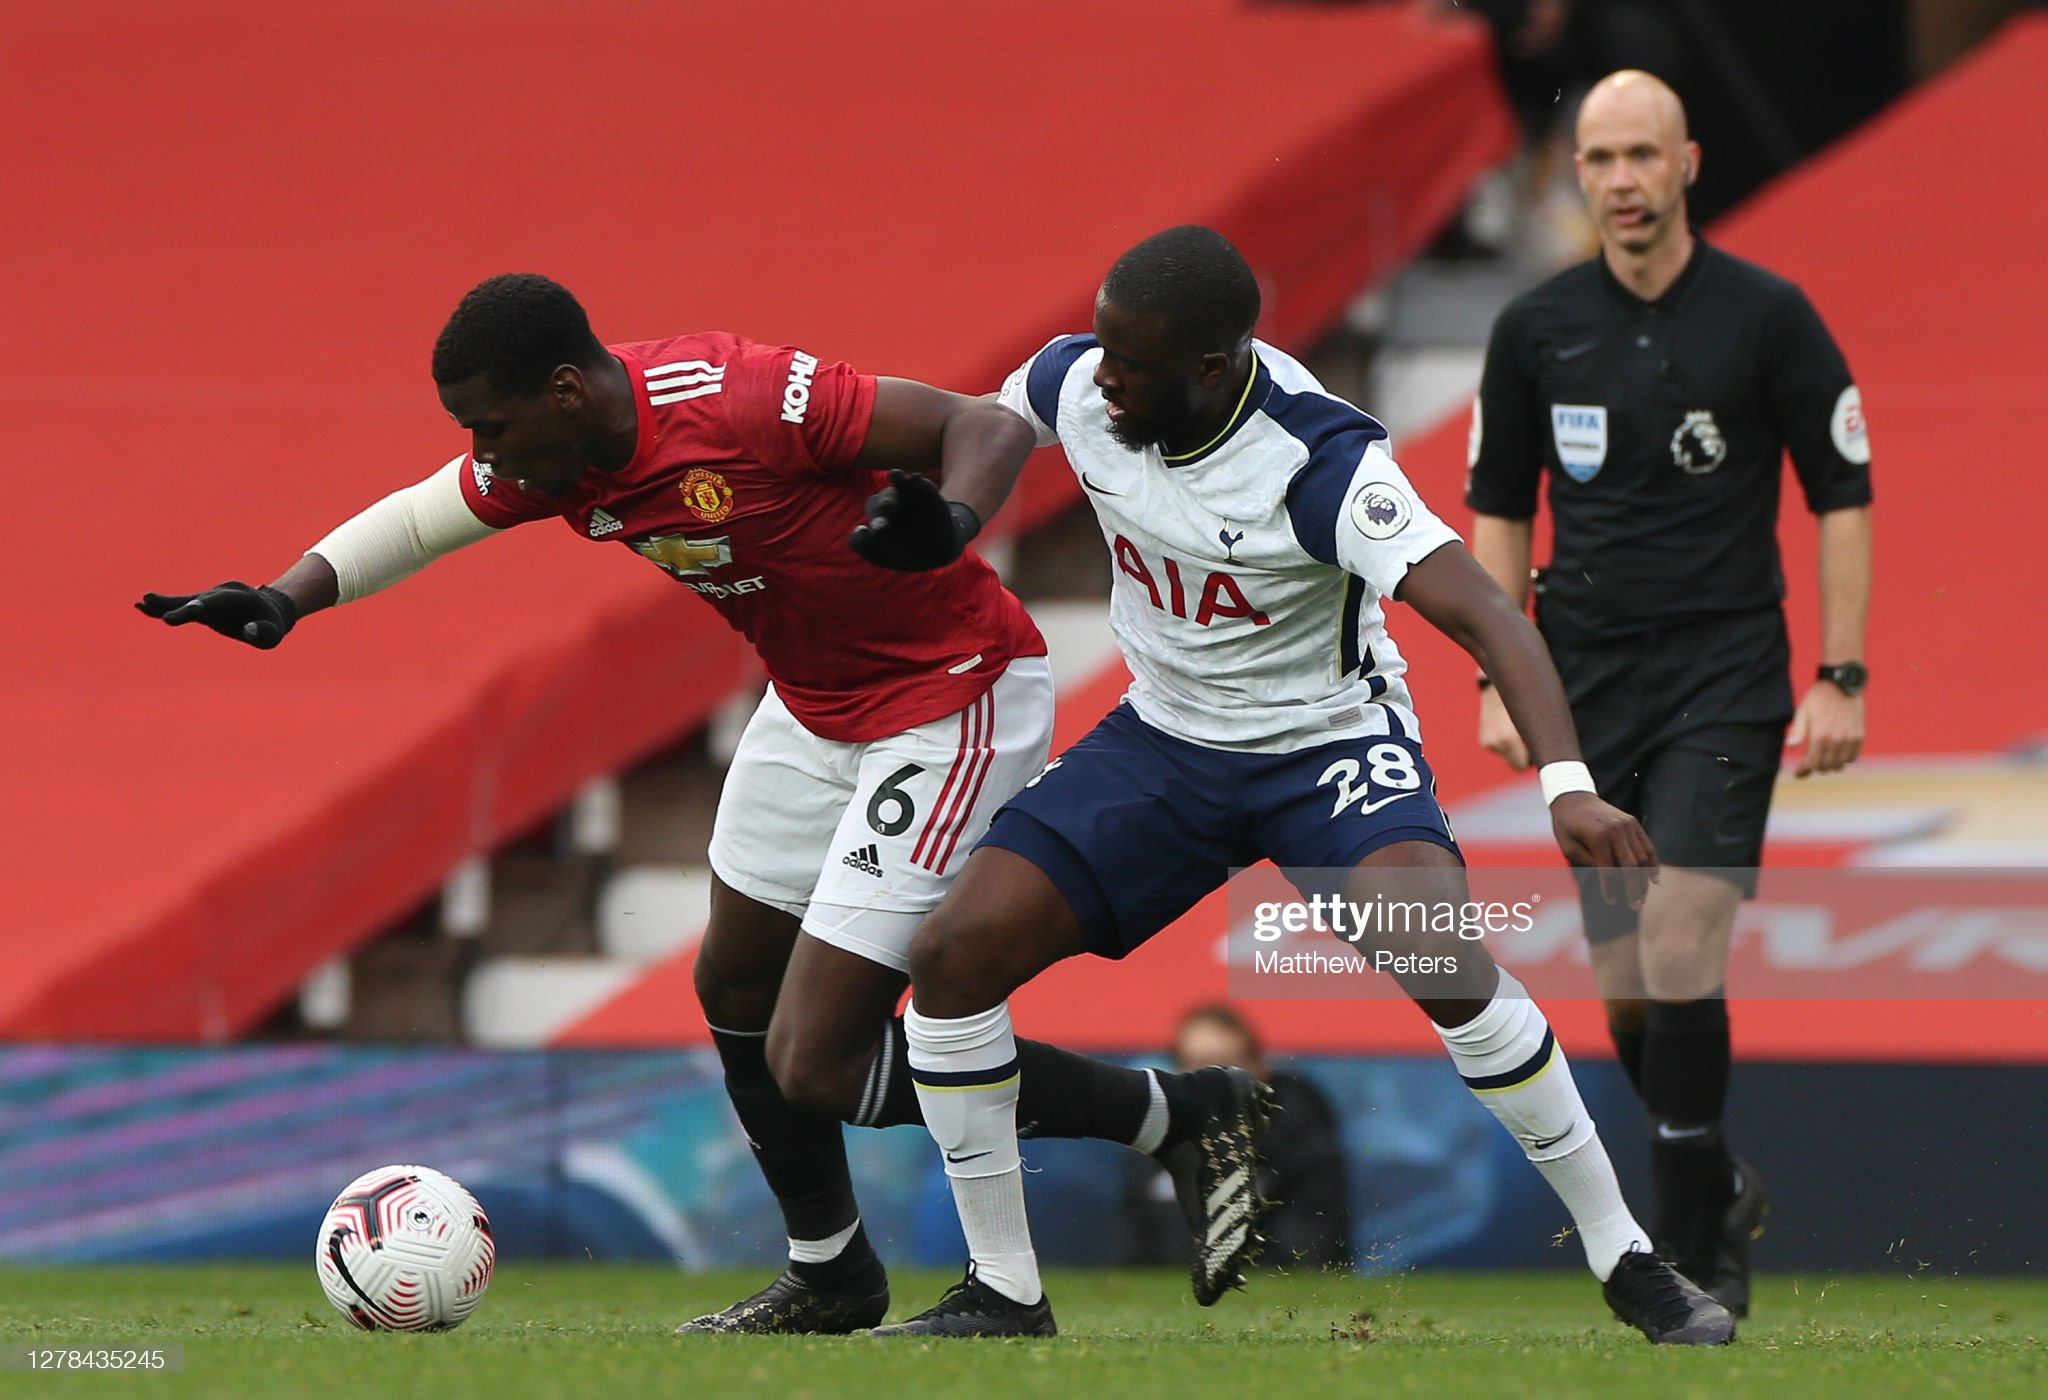 Tottenham vs Manchester United preview, prediction and odds